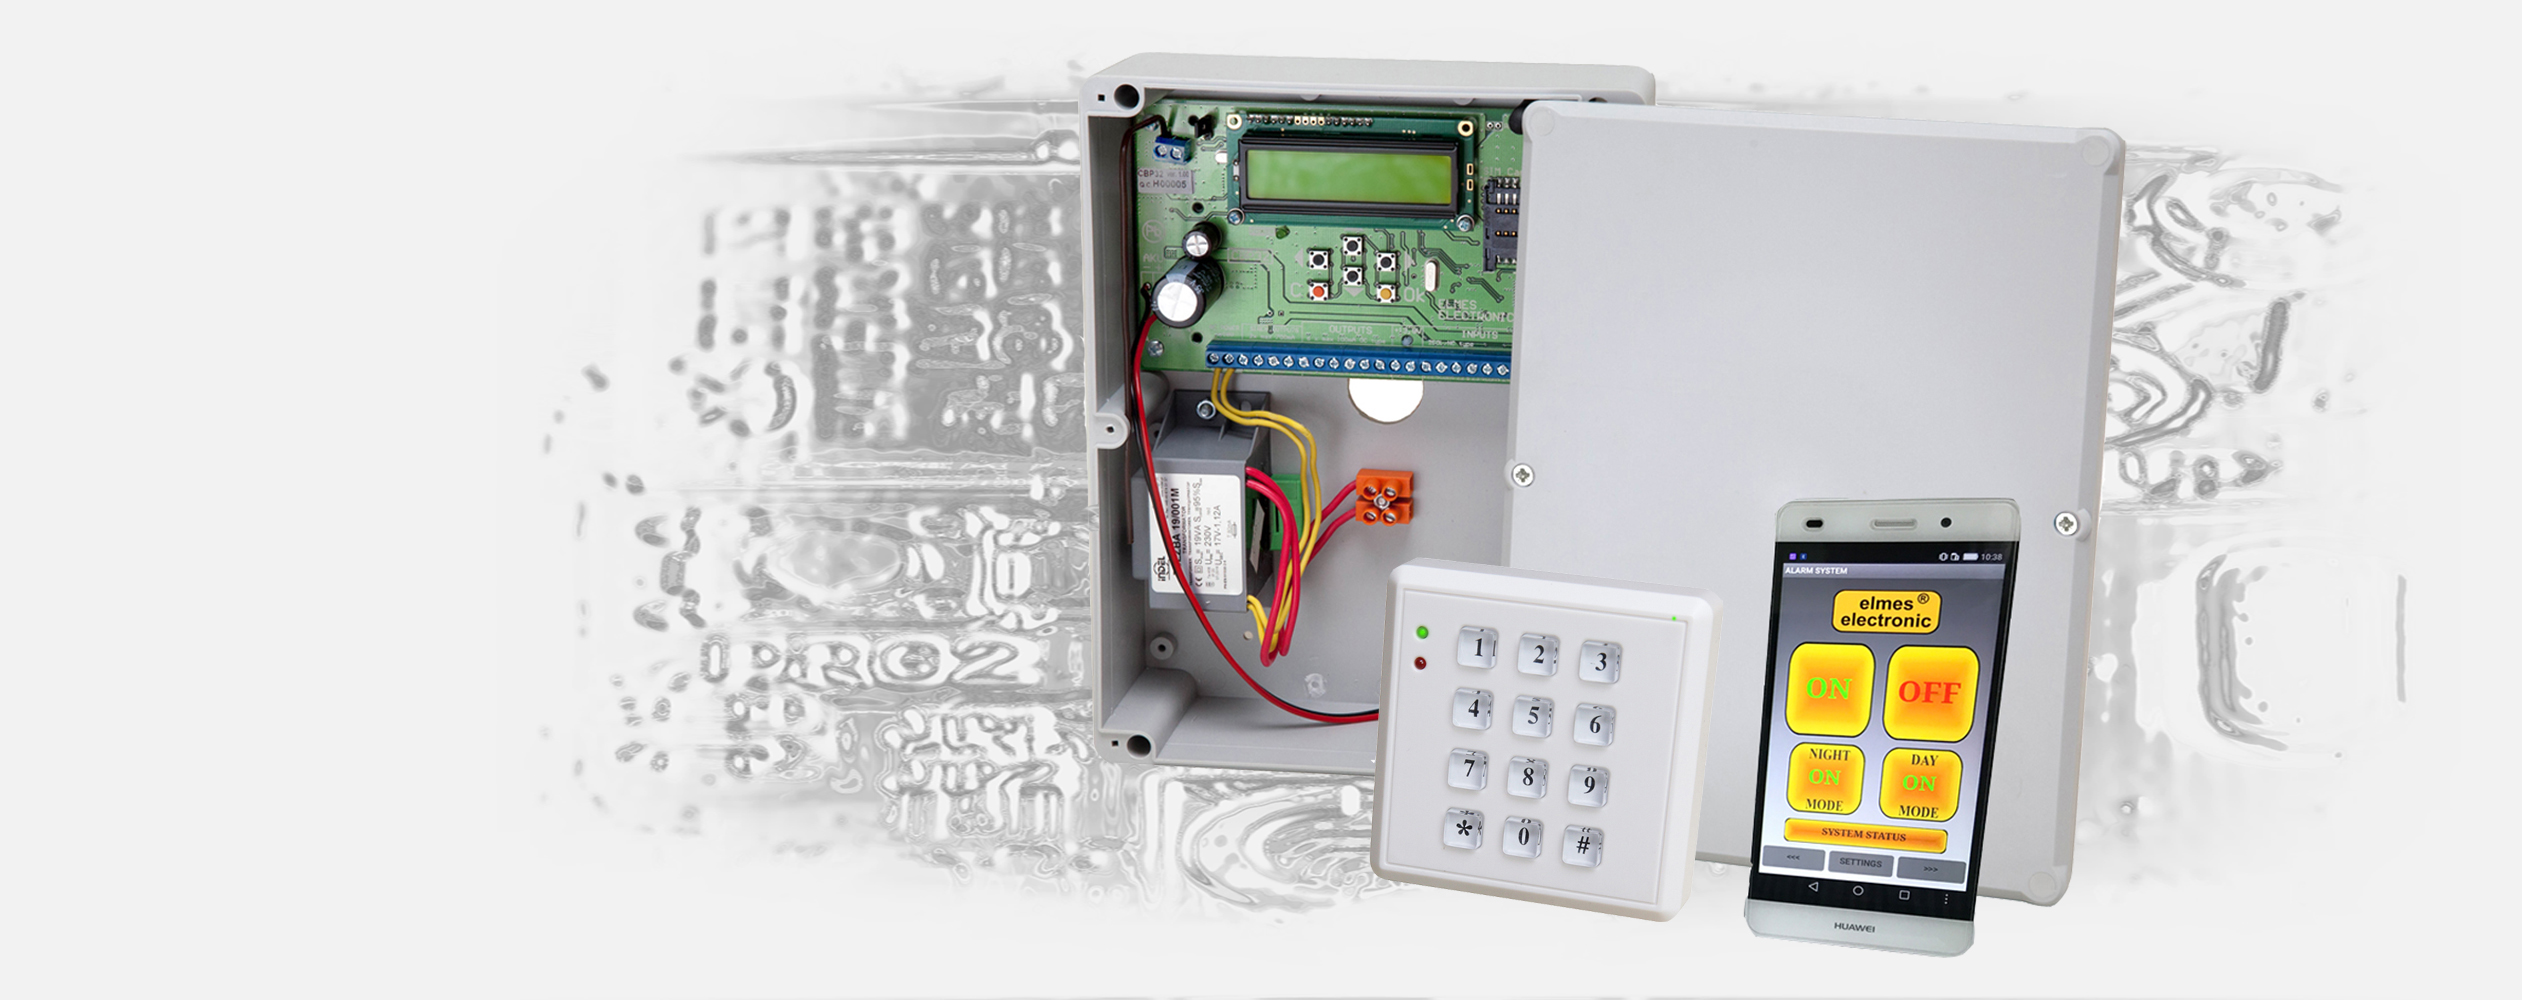 CPB32S - Alarm control panel + wireless keypad KB1